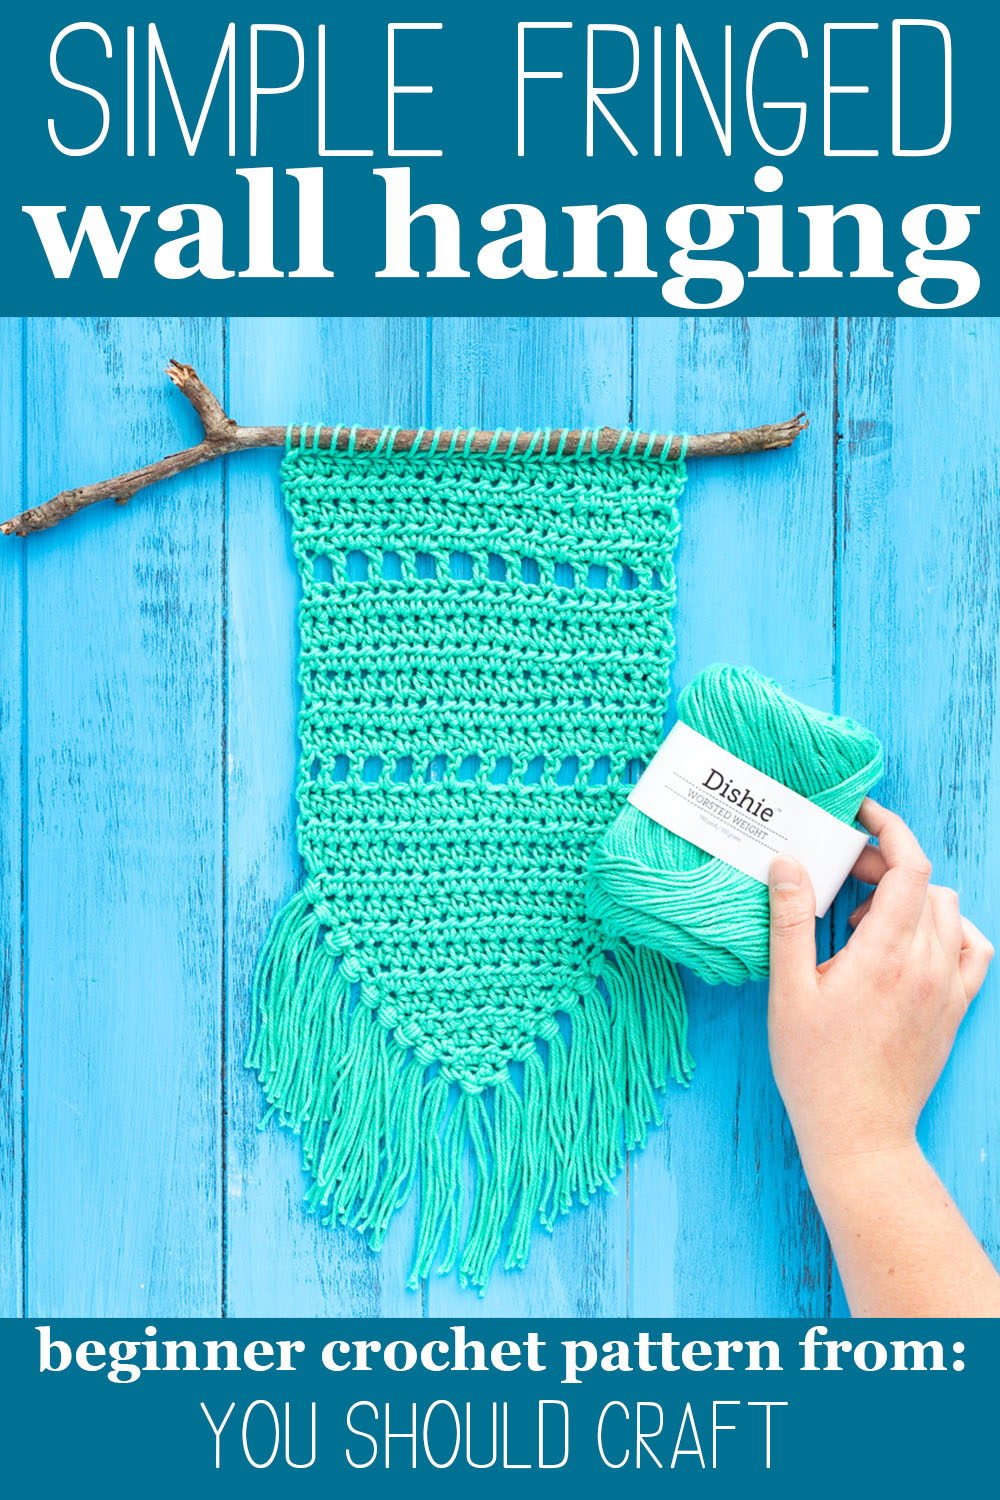 """crocheted wall hanging and a hand holding dishie cotton yarn with text """"simple fringed wall hanging - beginner crochet pattern from: you should craft"""""""